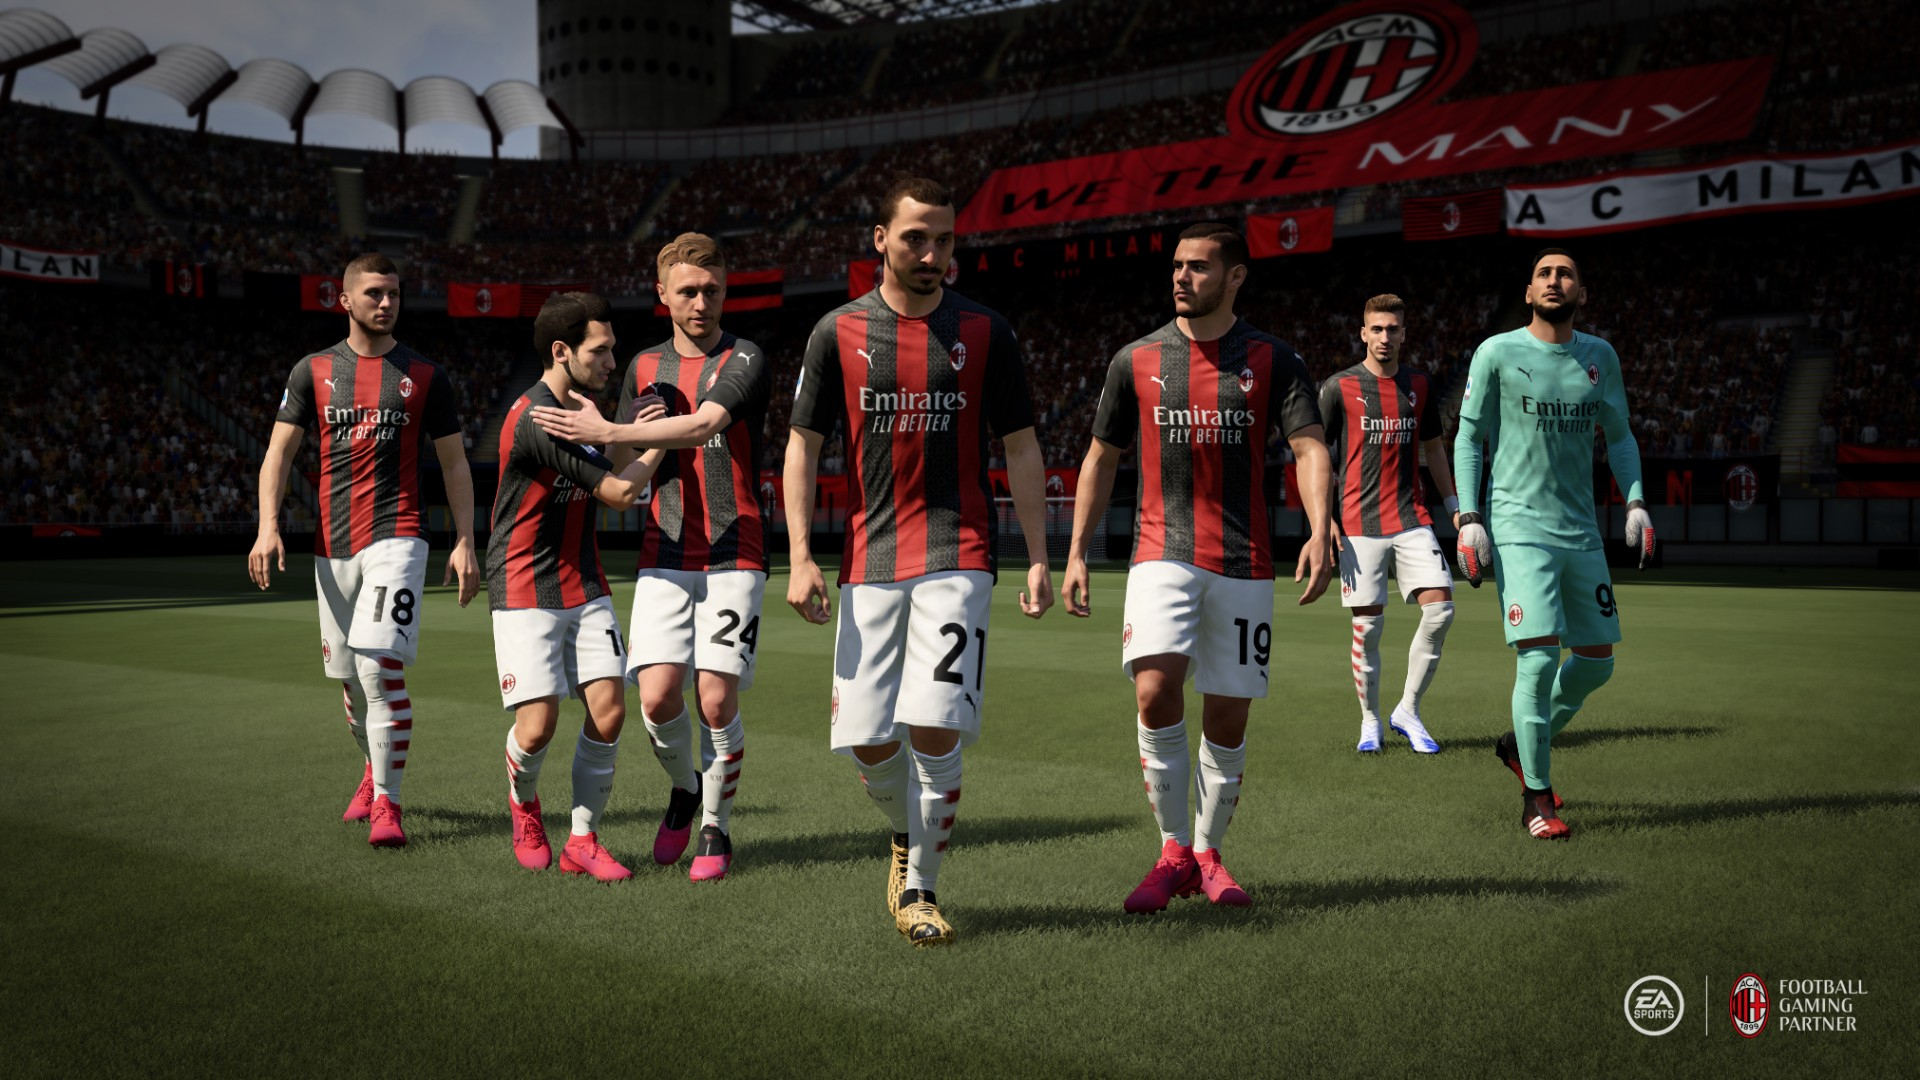 Milan Squad Ratings For Fifa 21 Revealed Three Players Over 80